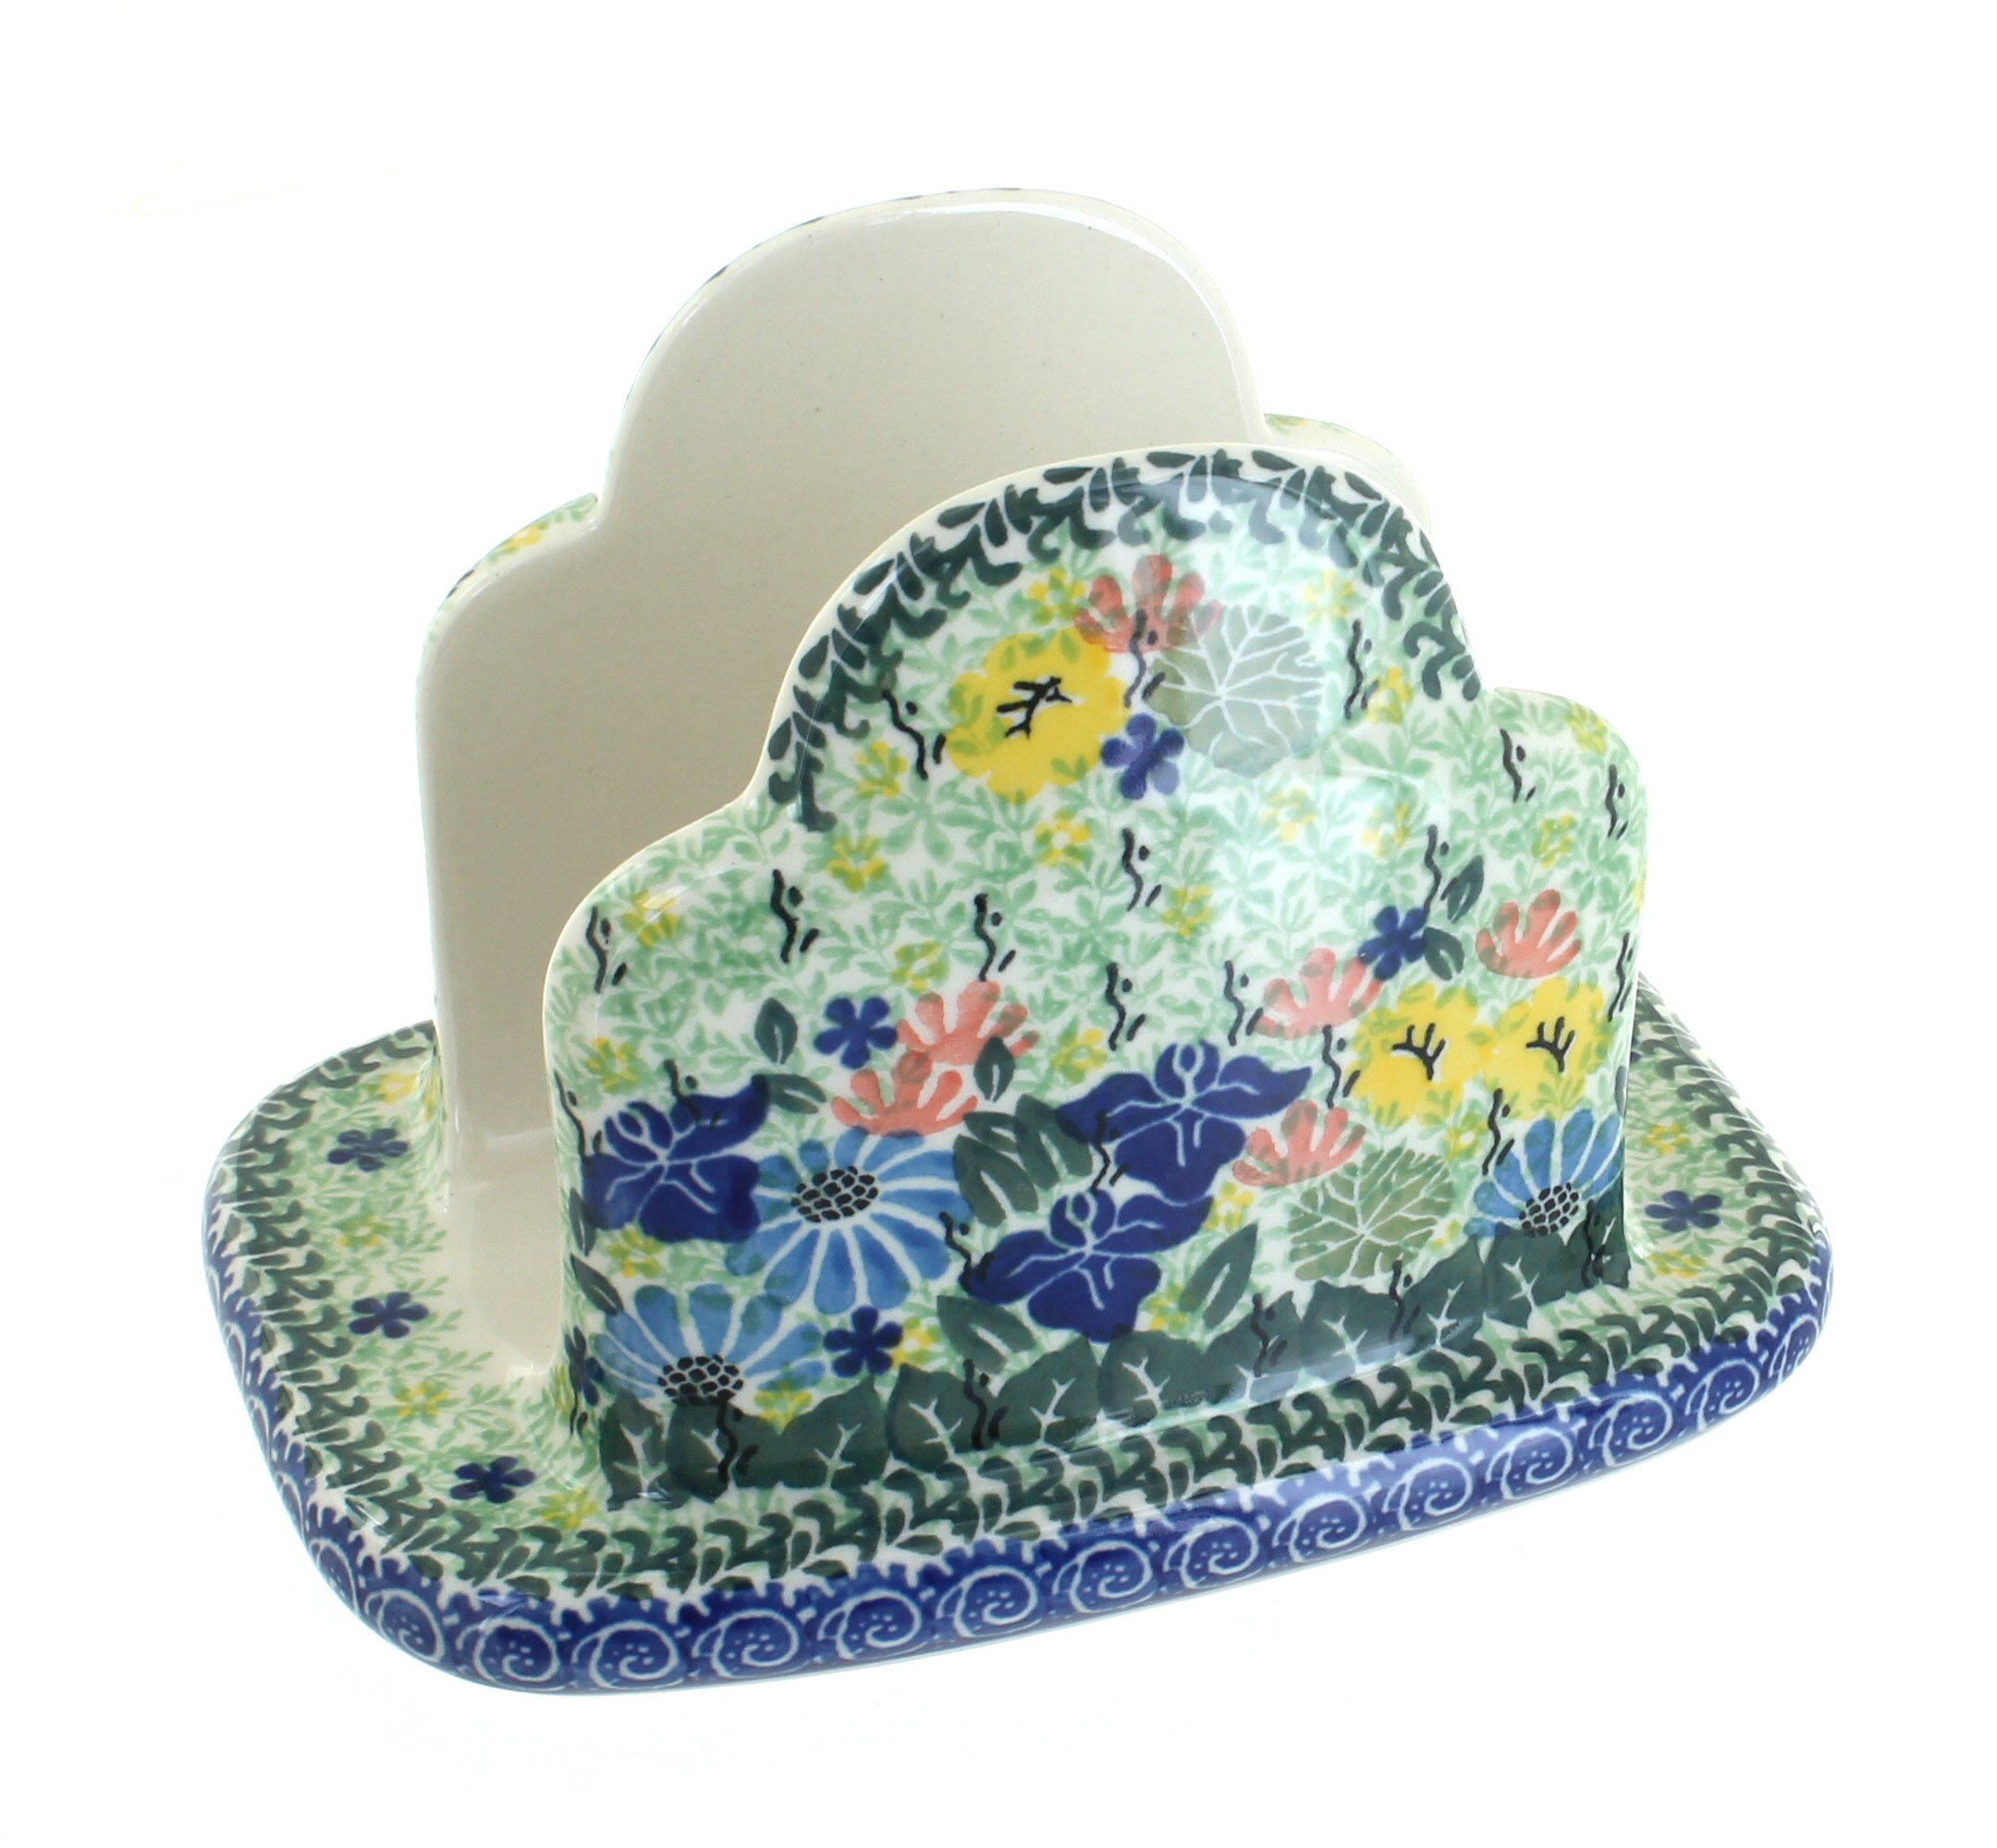 Polish Pottery Garden Bloom Napkin Holder by Ceramika Artystyczna